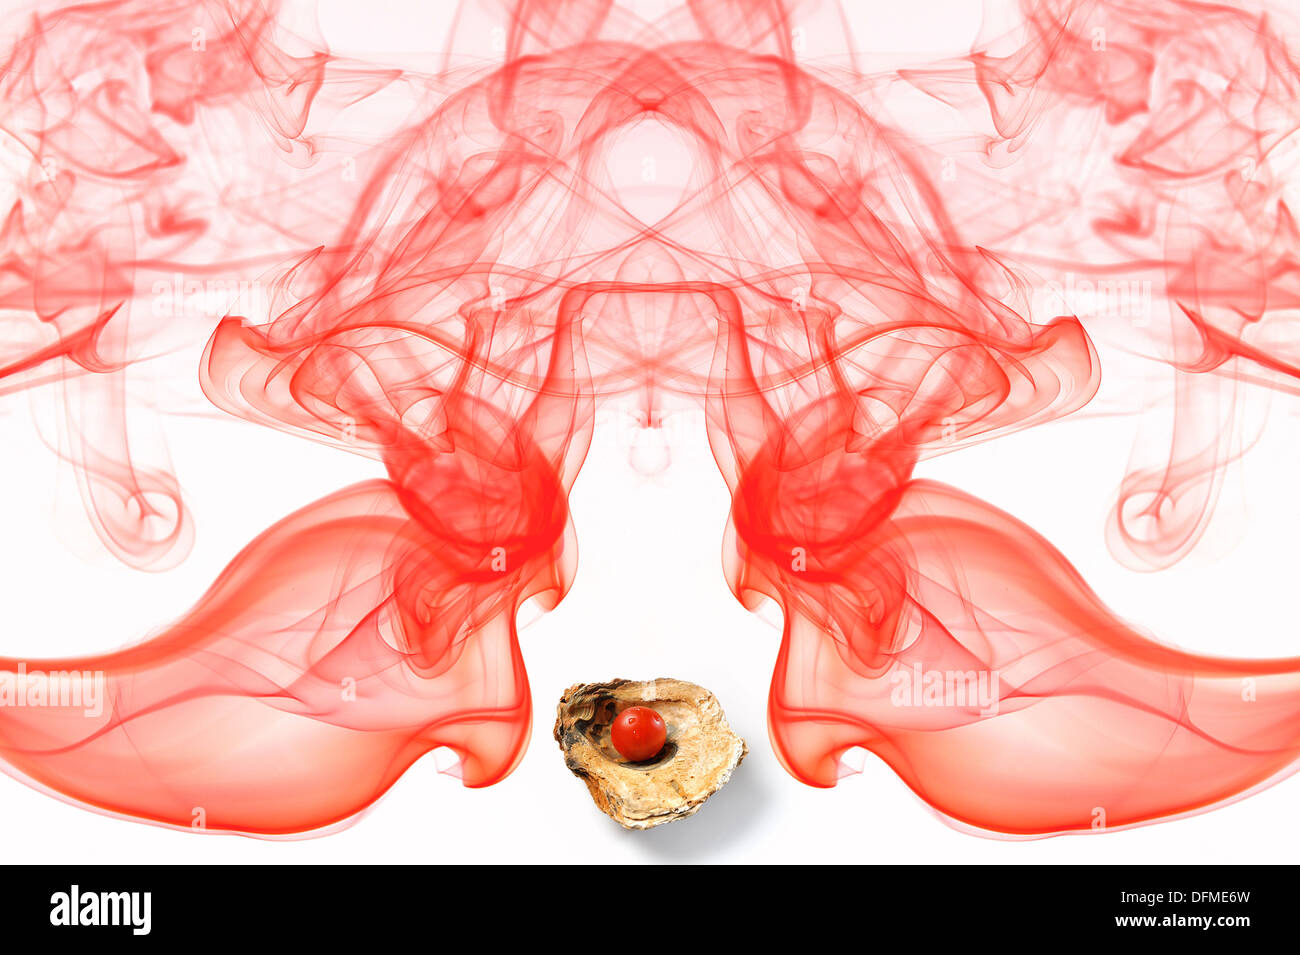 Red tomato on a seashell surrounded by a symmetrical composition of red smoke formed from - Stock Image